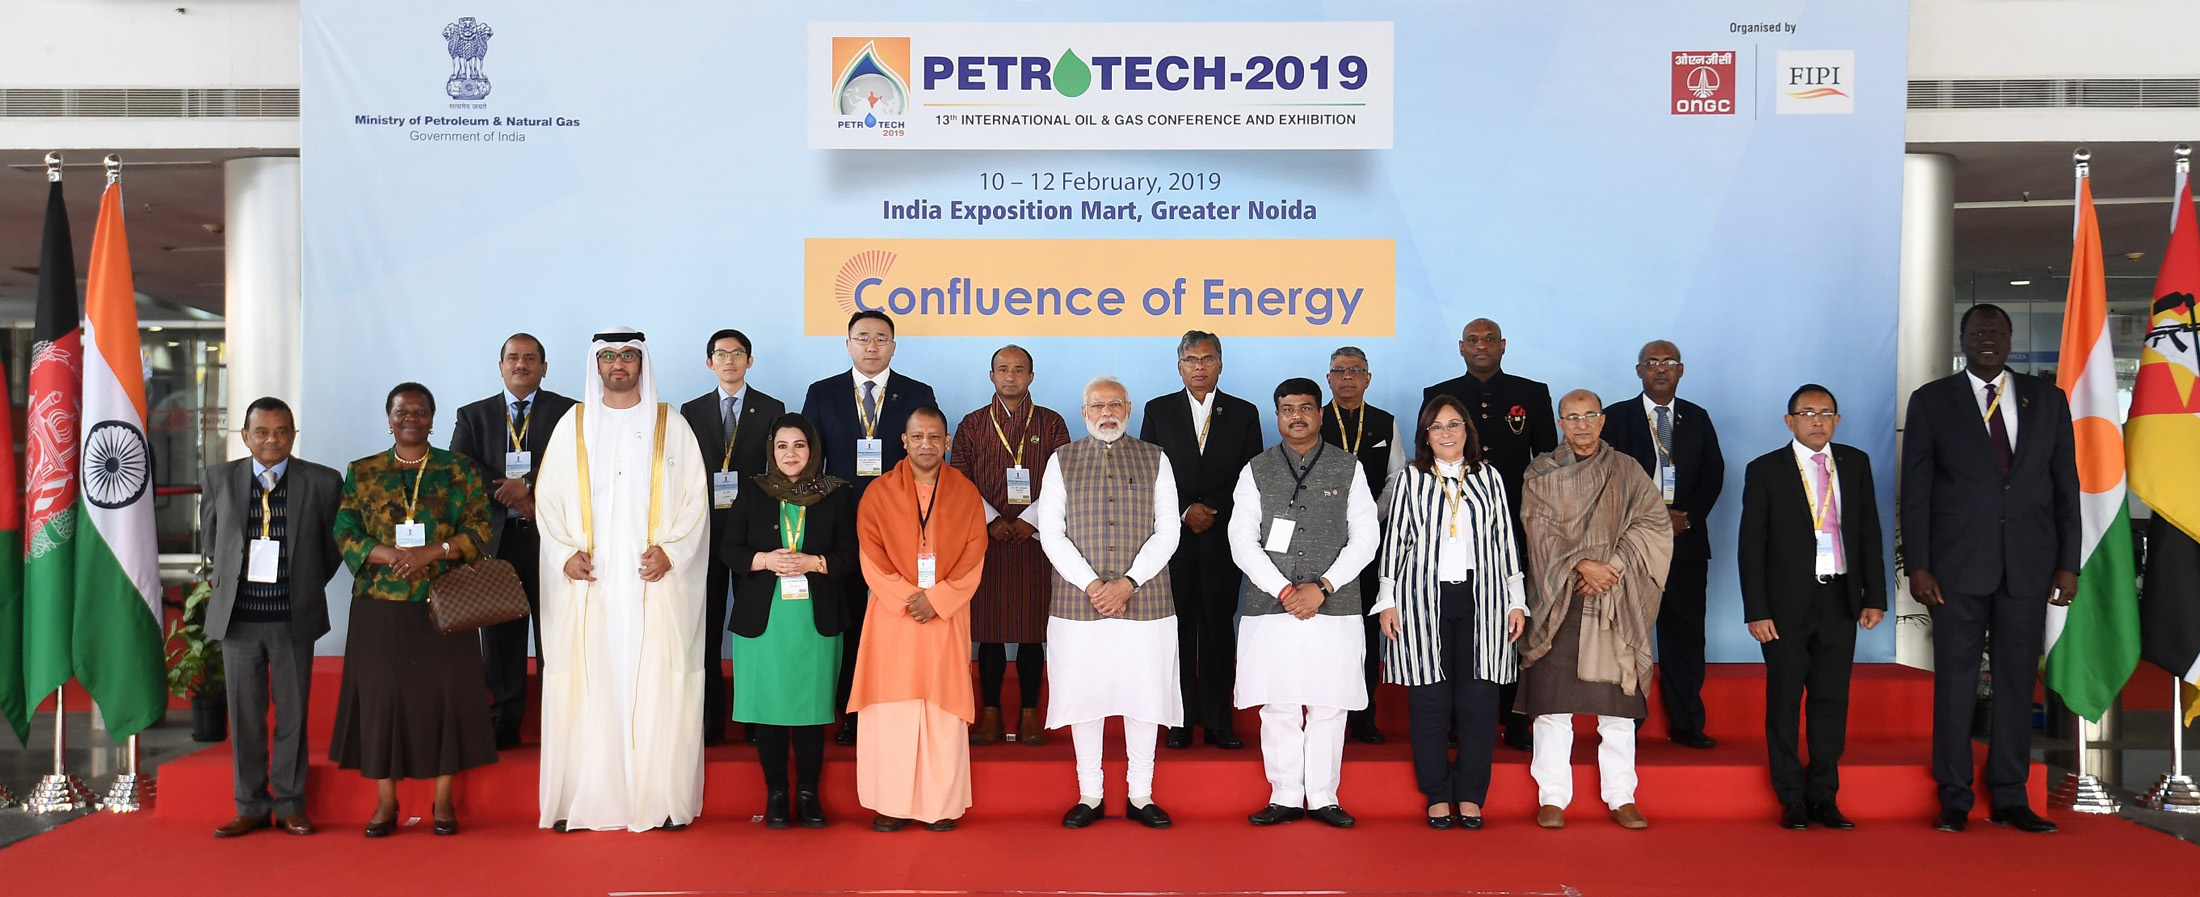 India's contribution in the onset of an era based on energy justice